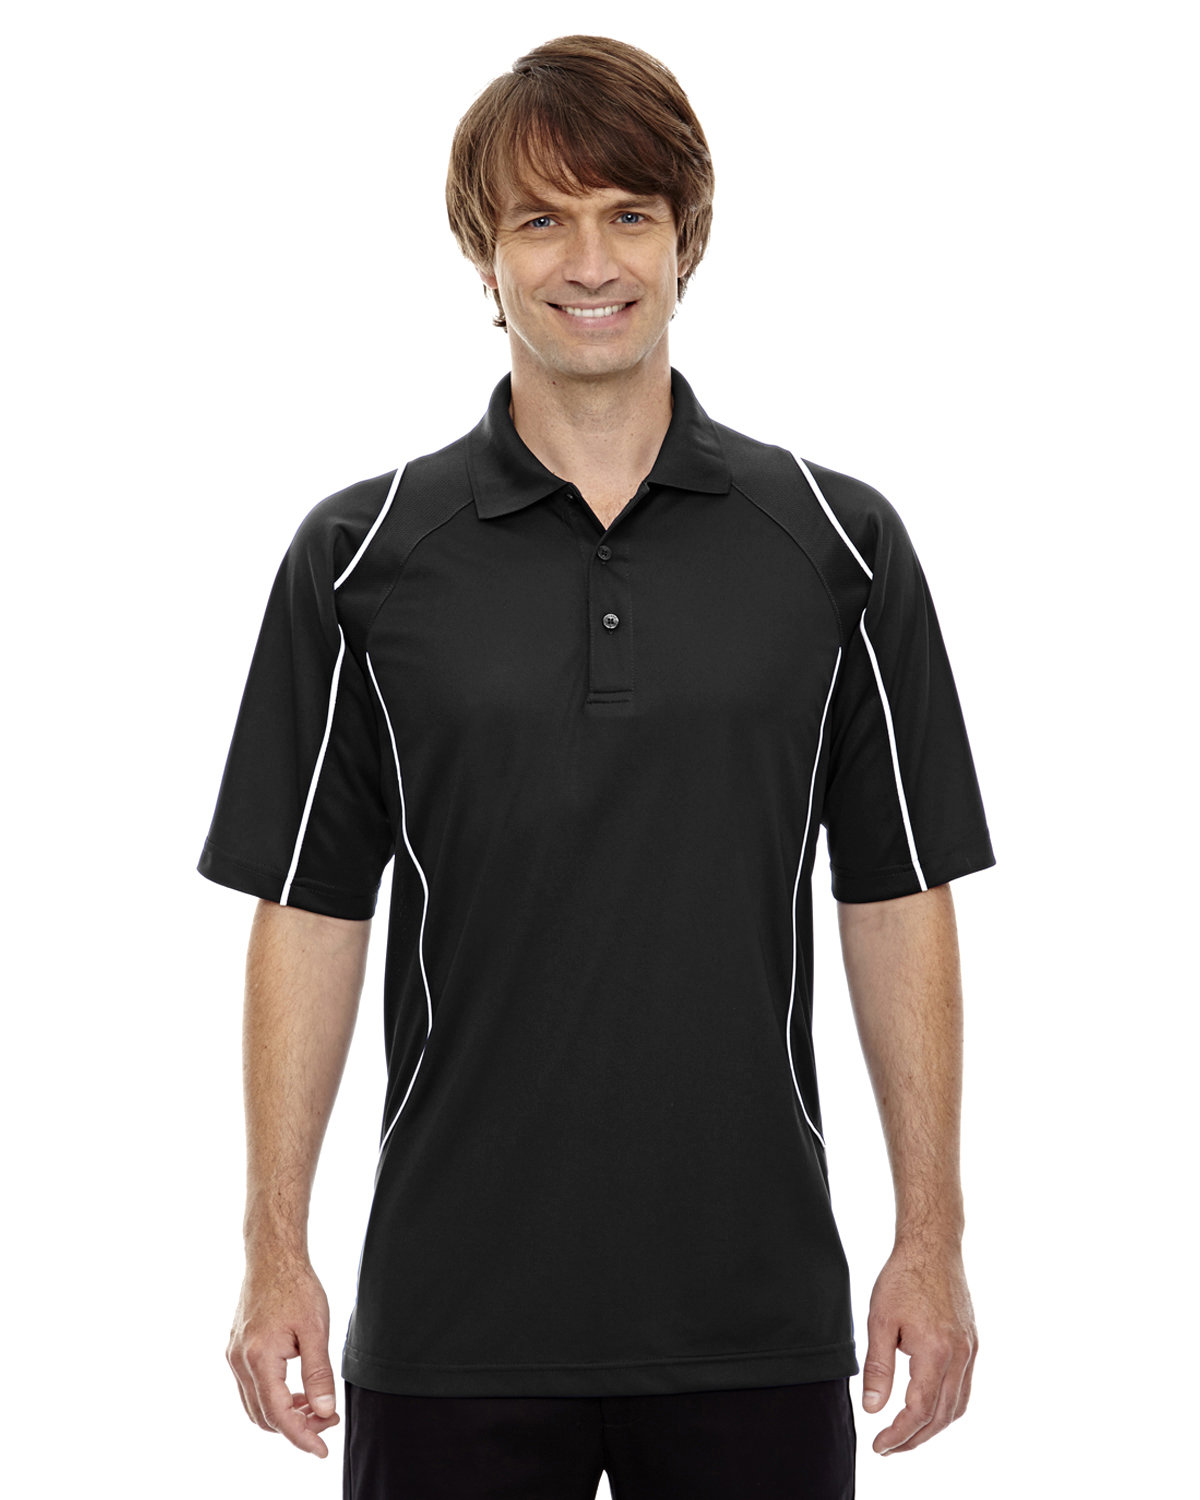 Extreme Men's Eperformance™ Velocity Snag Protection Colorblock Polo with Piping BLACK